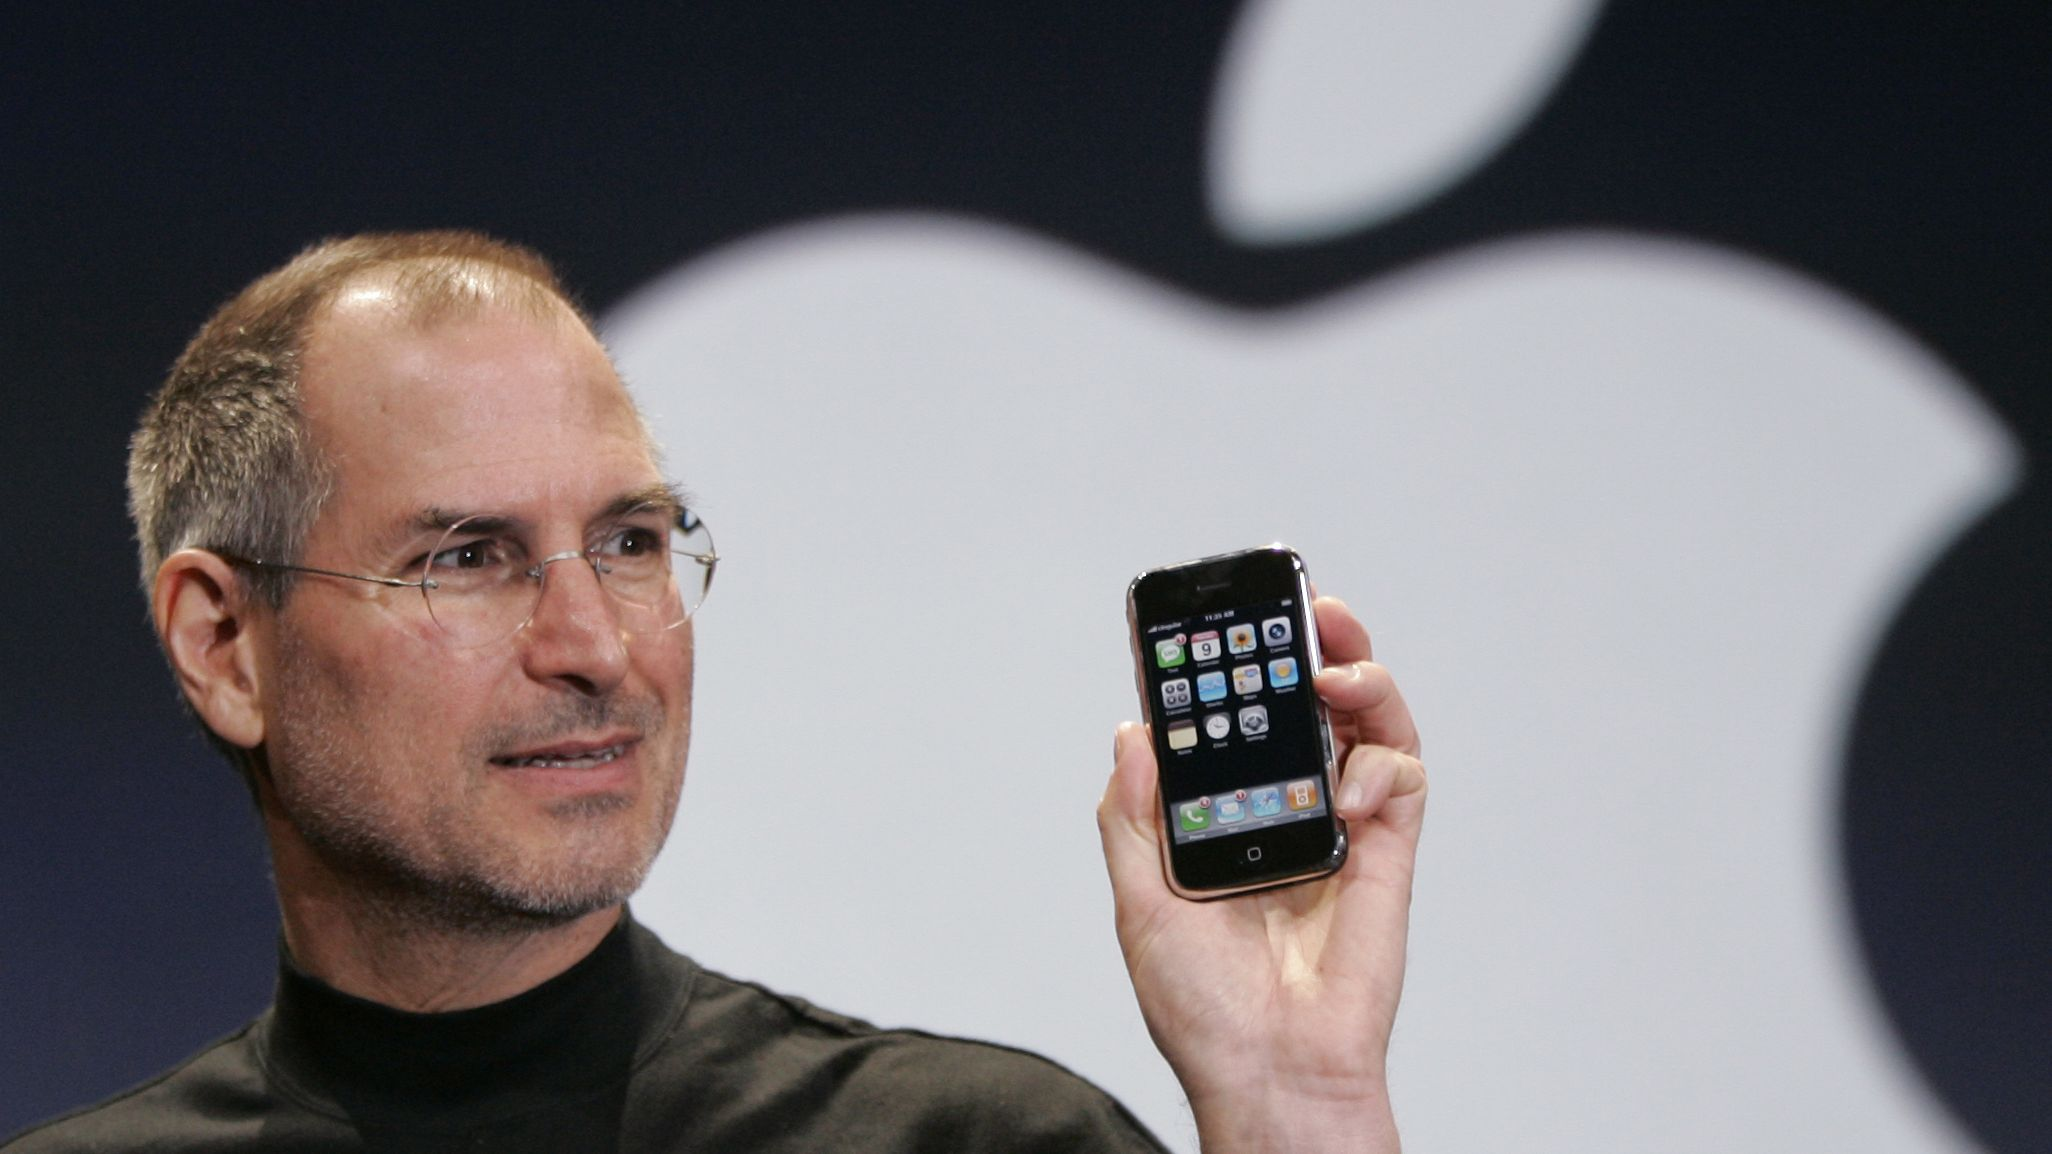 In this Jan. 9, 2007 file photo, Apple CEO Steve Jobs holds up an Apple iPhone at the MacWorld Conference in San Francisco. Apple Inc. on Wednesday, Aug. 24, 2011 said Jobs is resigning as CEO, effective immediately. He will be replaced by Tim Cook, who was the company's chief operating officer. It said Jobs has been elected as Apple's chairman.